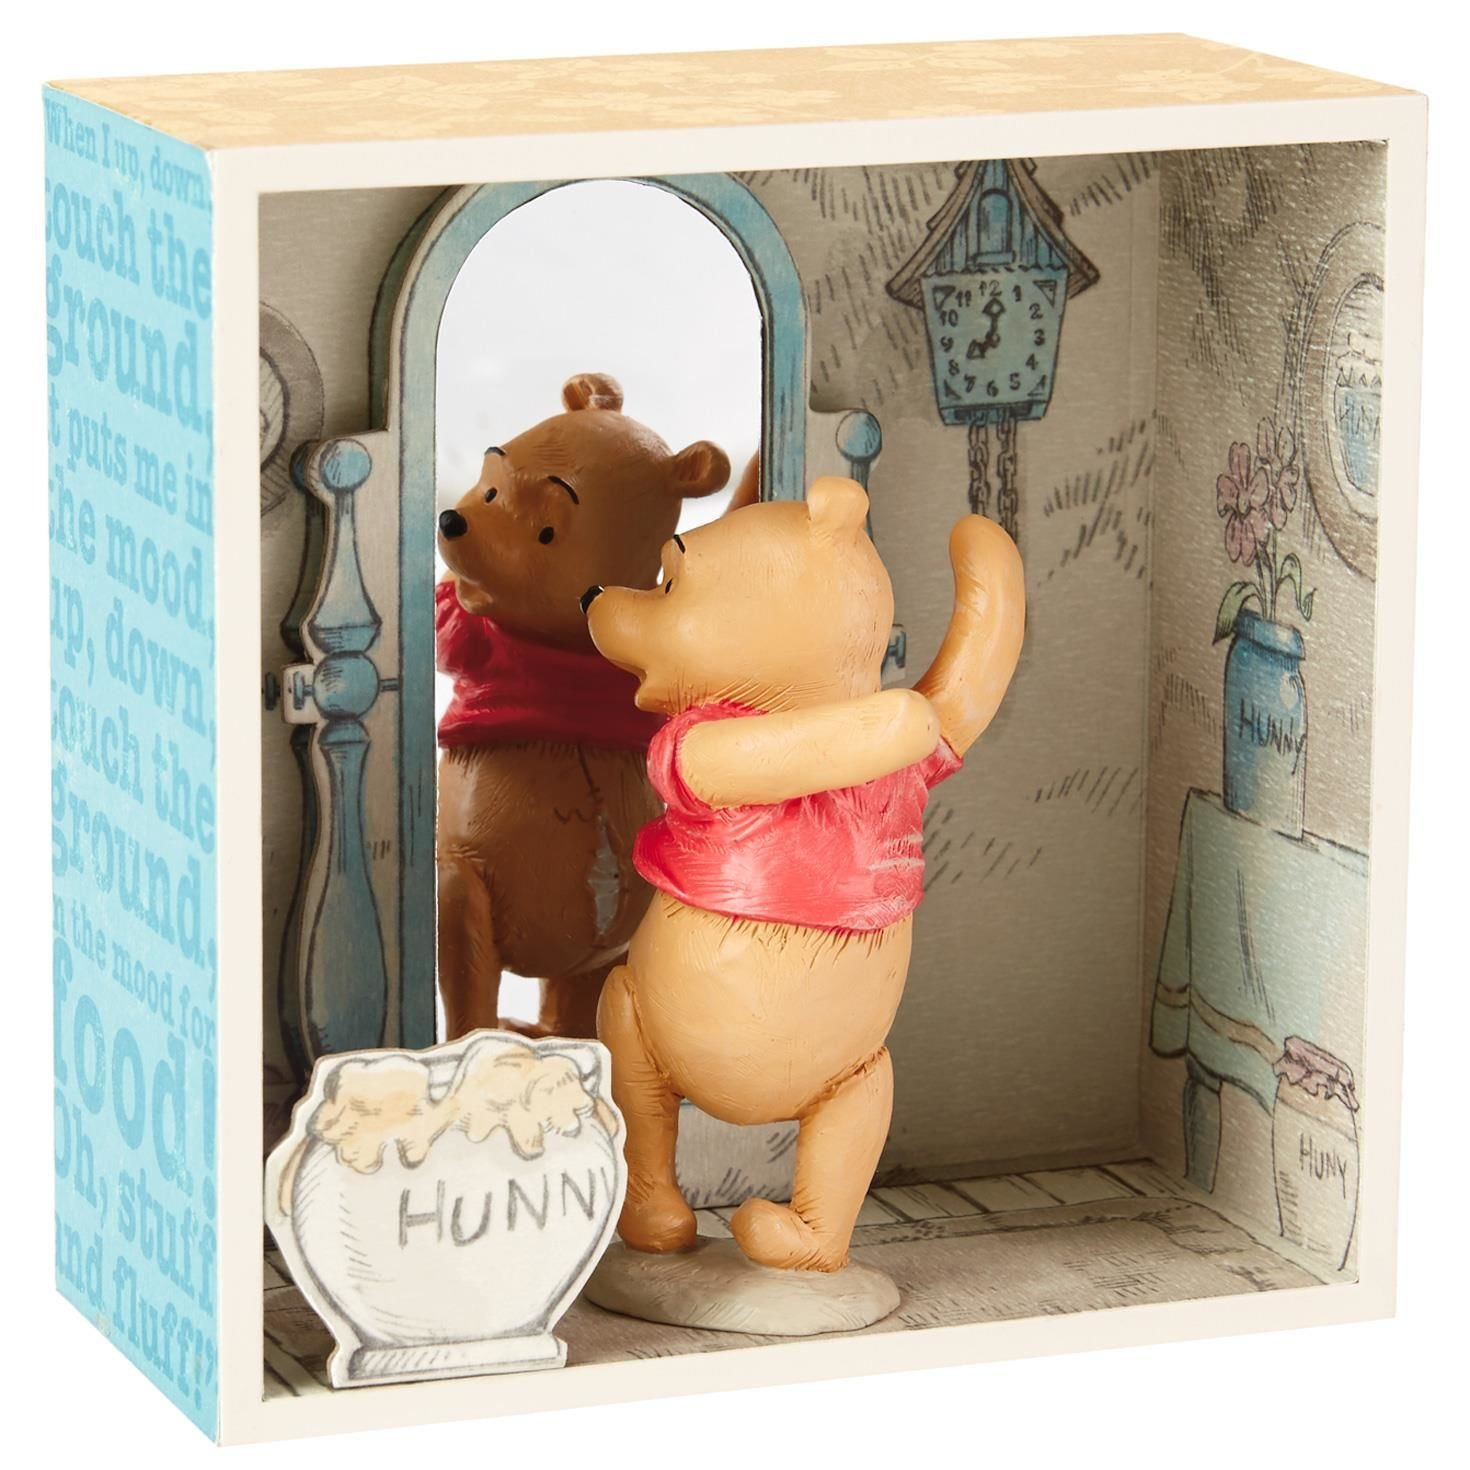 Hallmark Winnie the Pooh Exercise Time Shadow Box by Hallmark